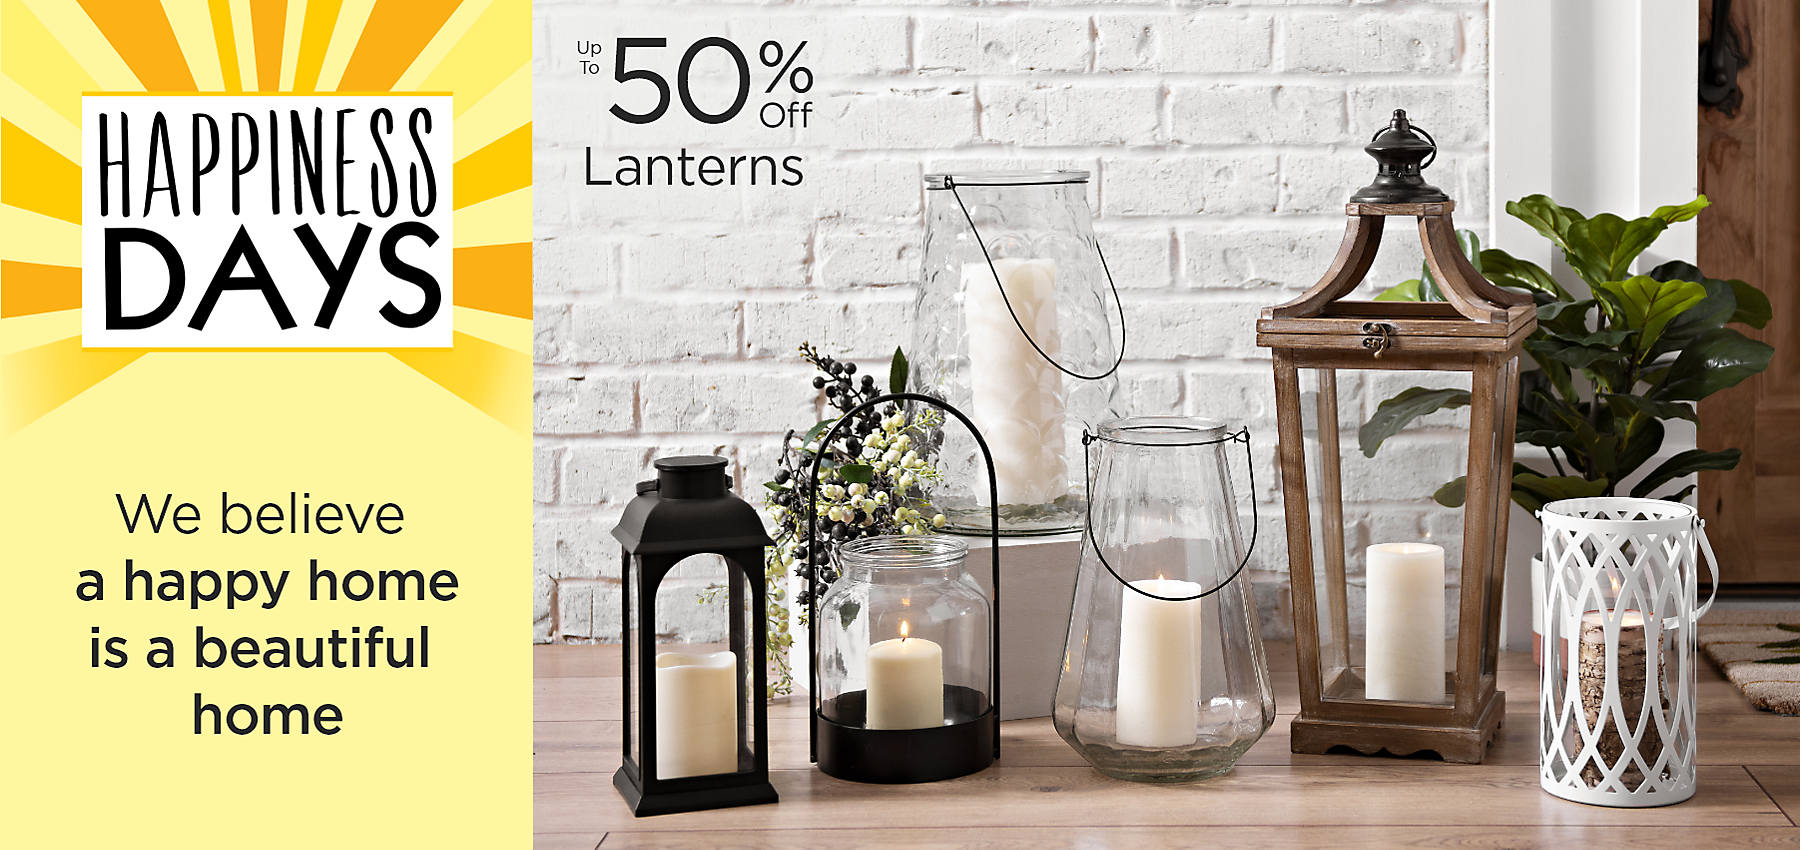 Happiness Days We believe a happy home is a beautiful home Lanterns Up to 50% Off